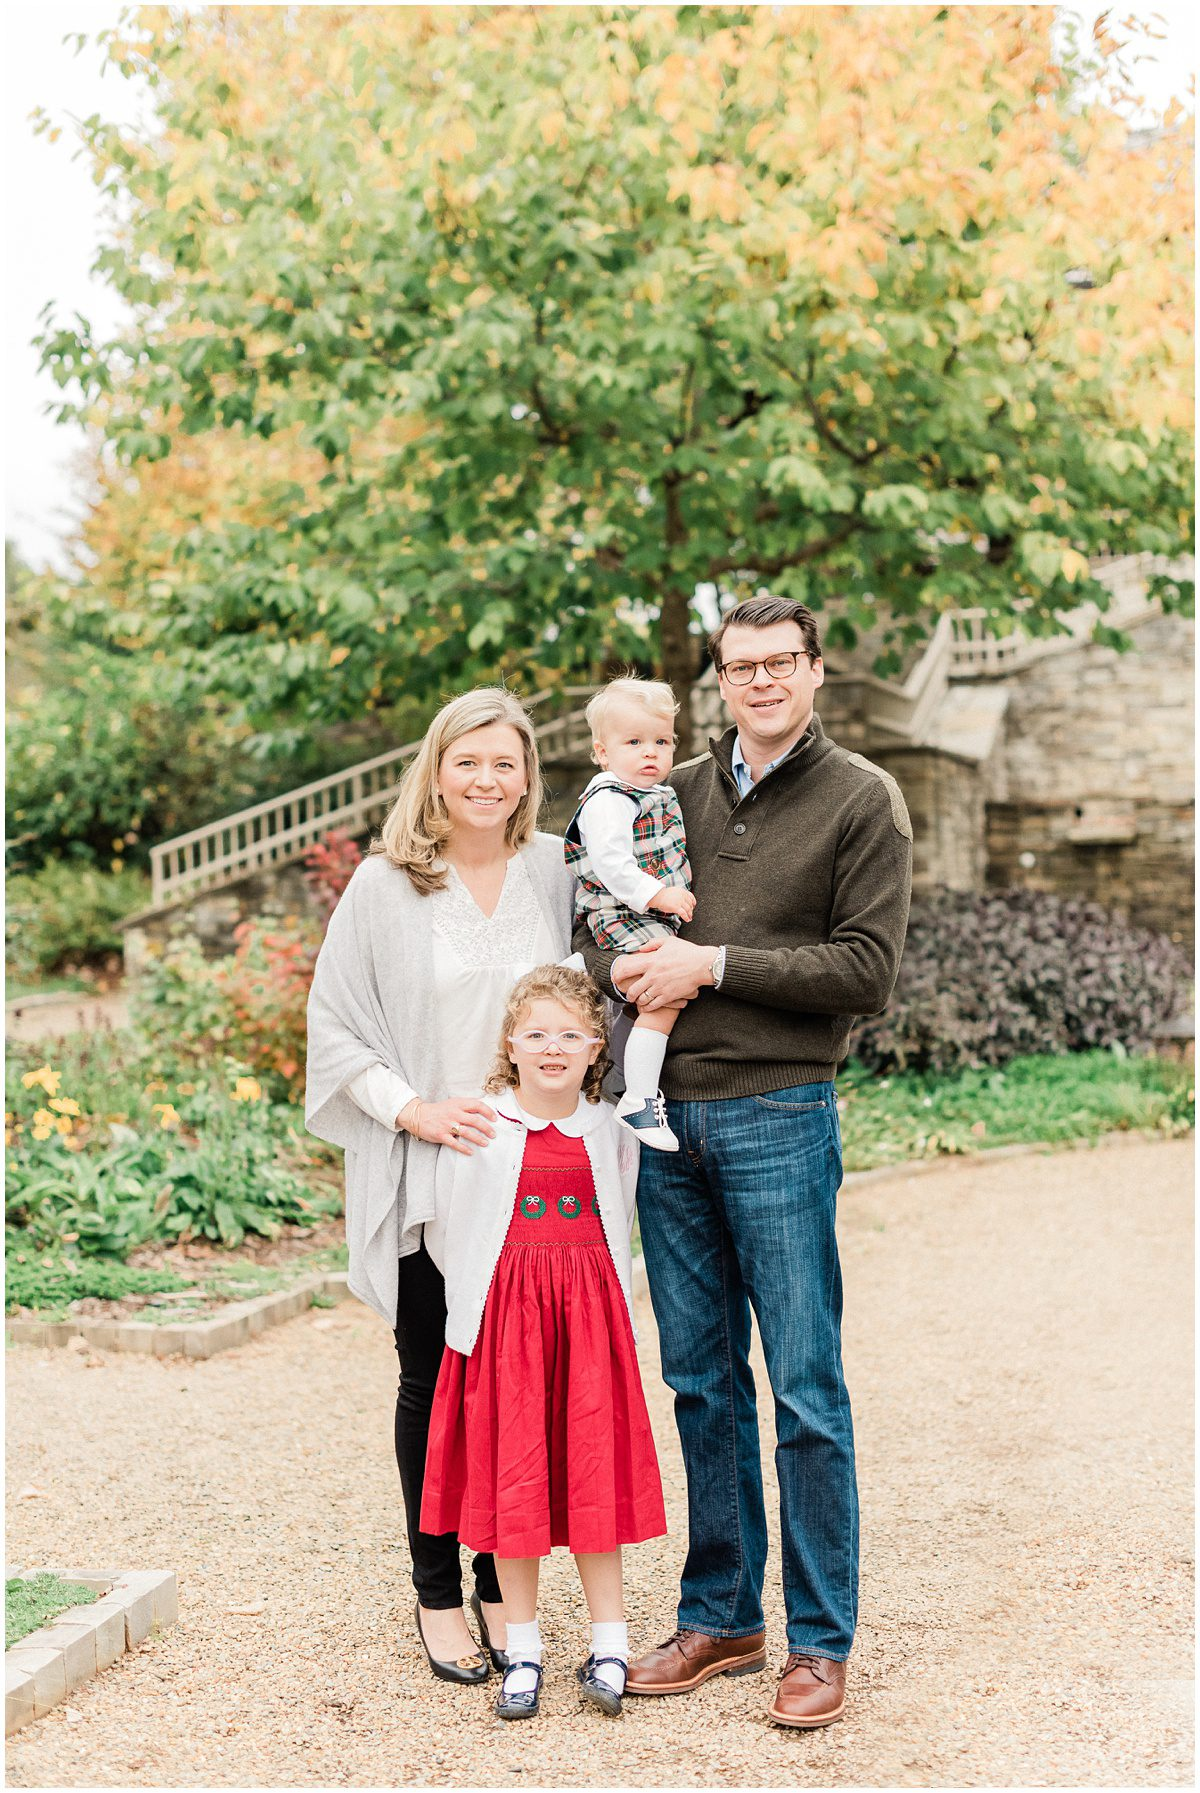 Christmas Inspired Family Photos in Greenville, SC